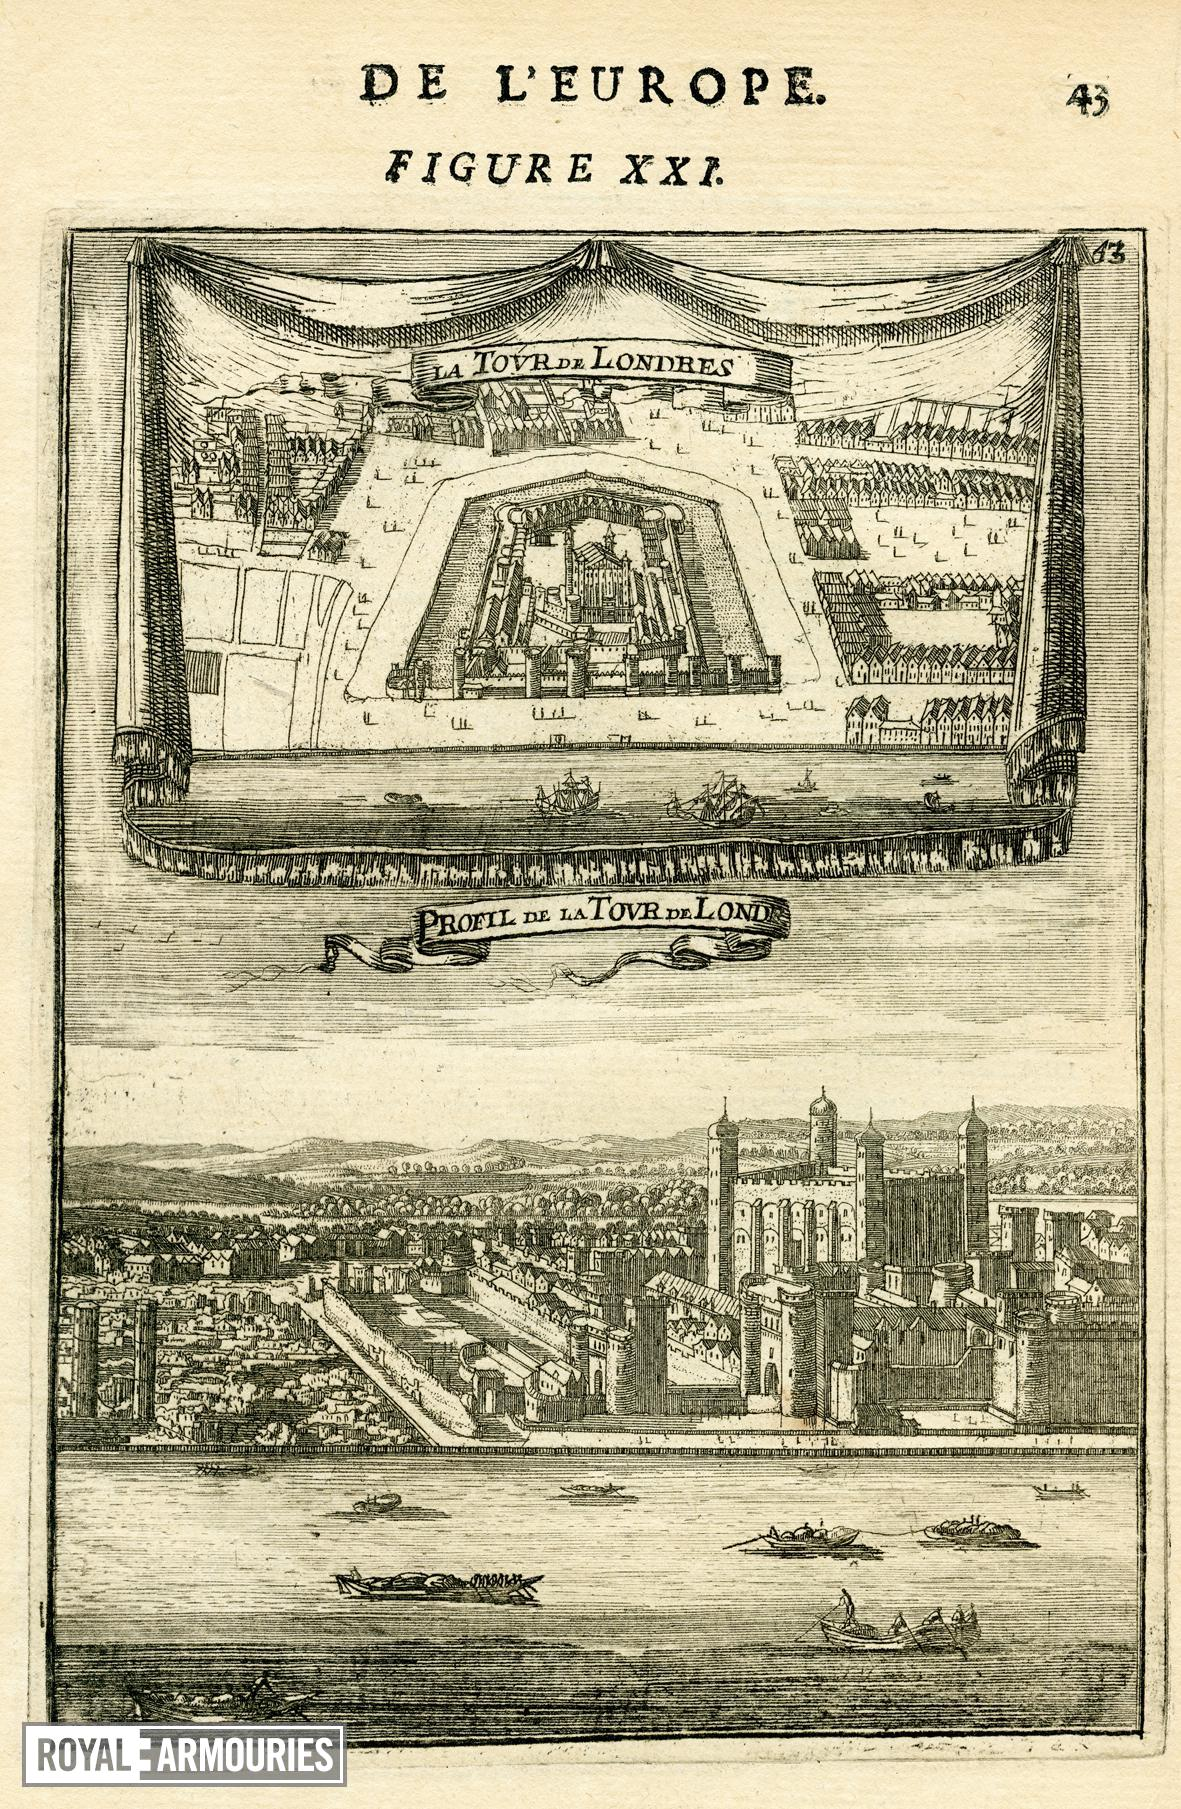 Tower of London plan and view